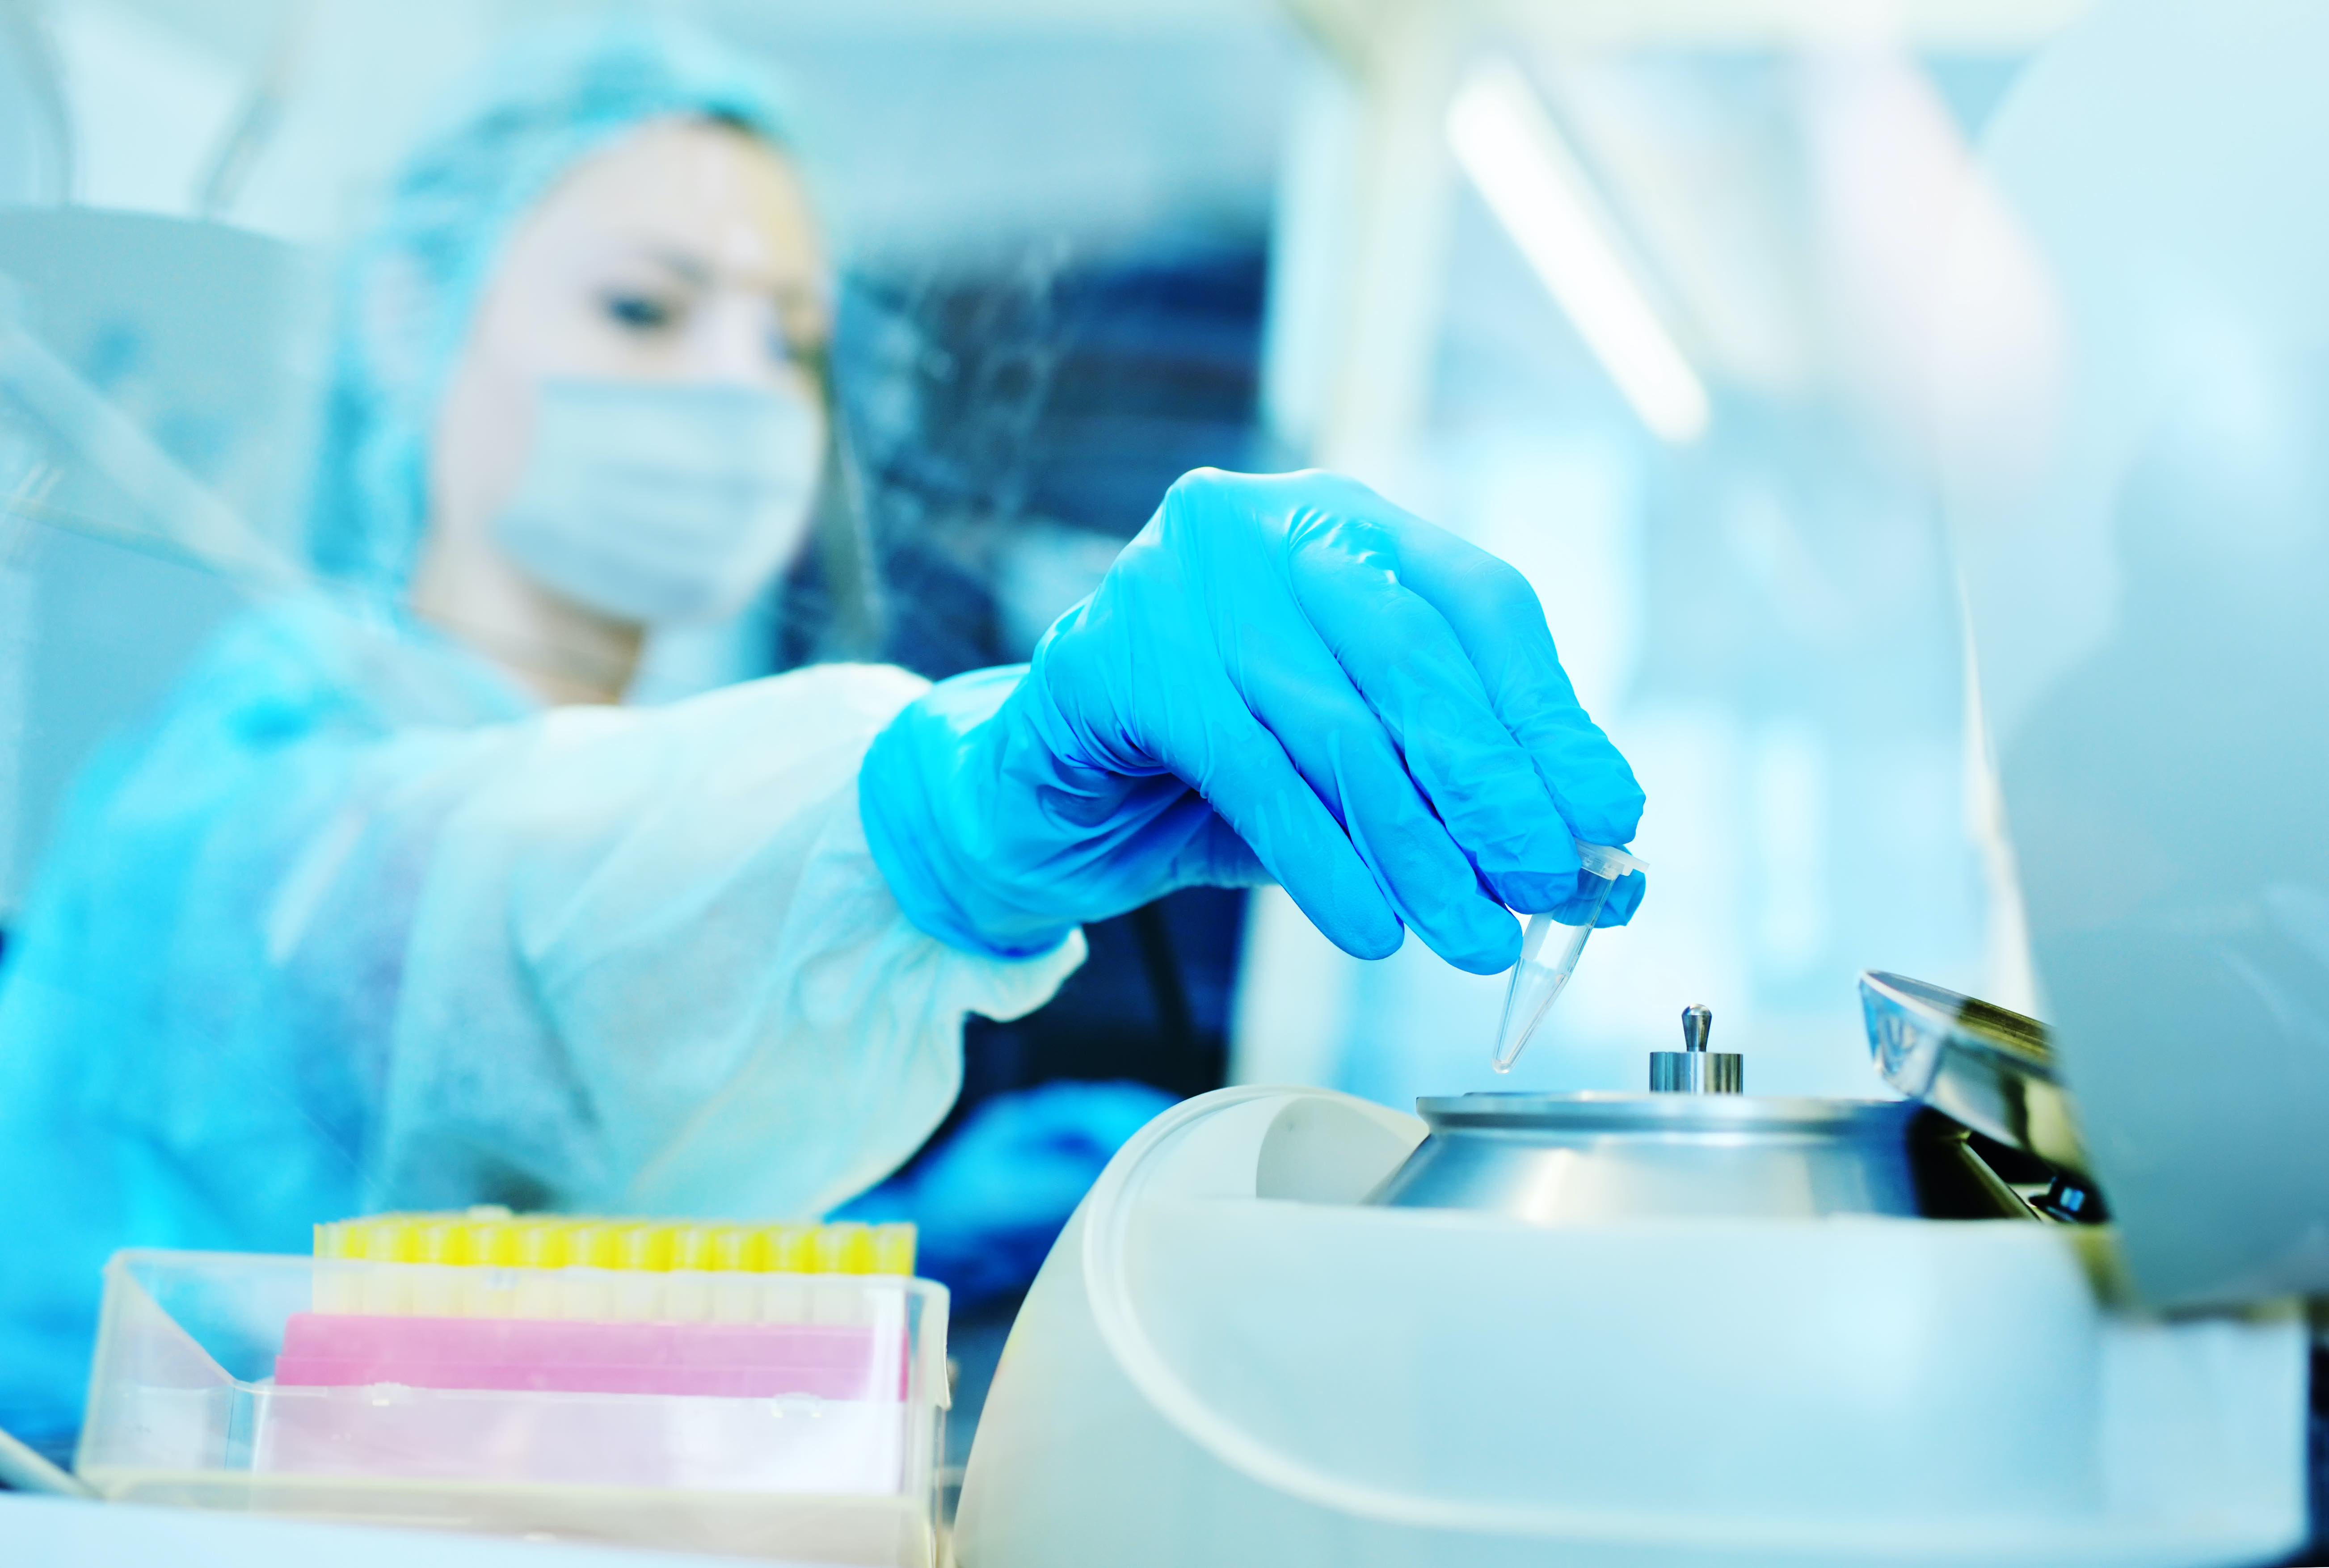 a female scientist in a protective medical mask and rubber gloves makes PCR DNA tests in a modern chemical and bacteriological laboratory.2019-nCoV; coronavirus; China;